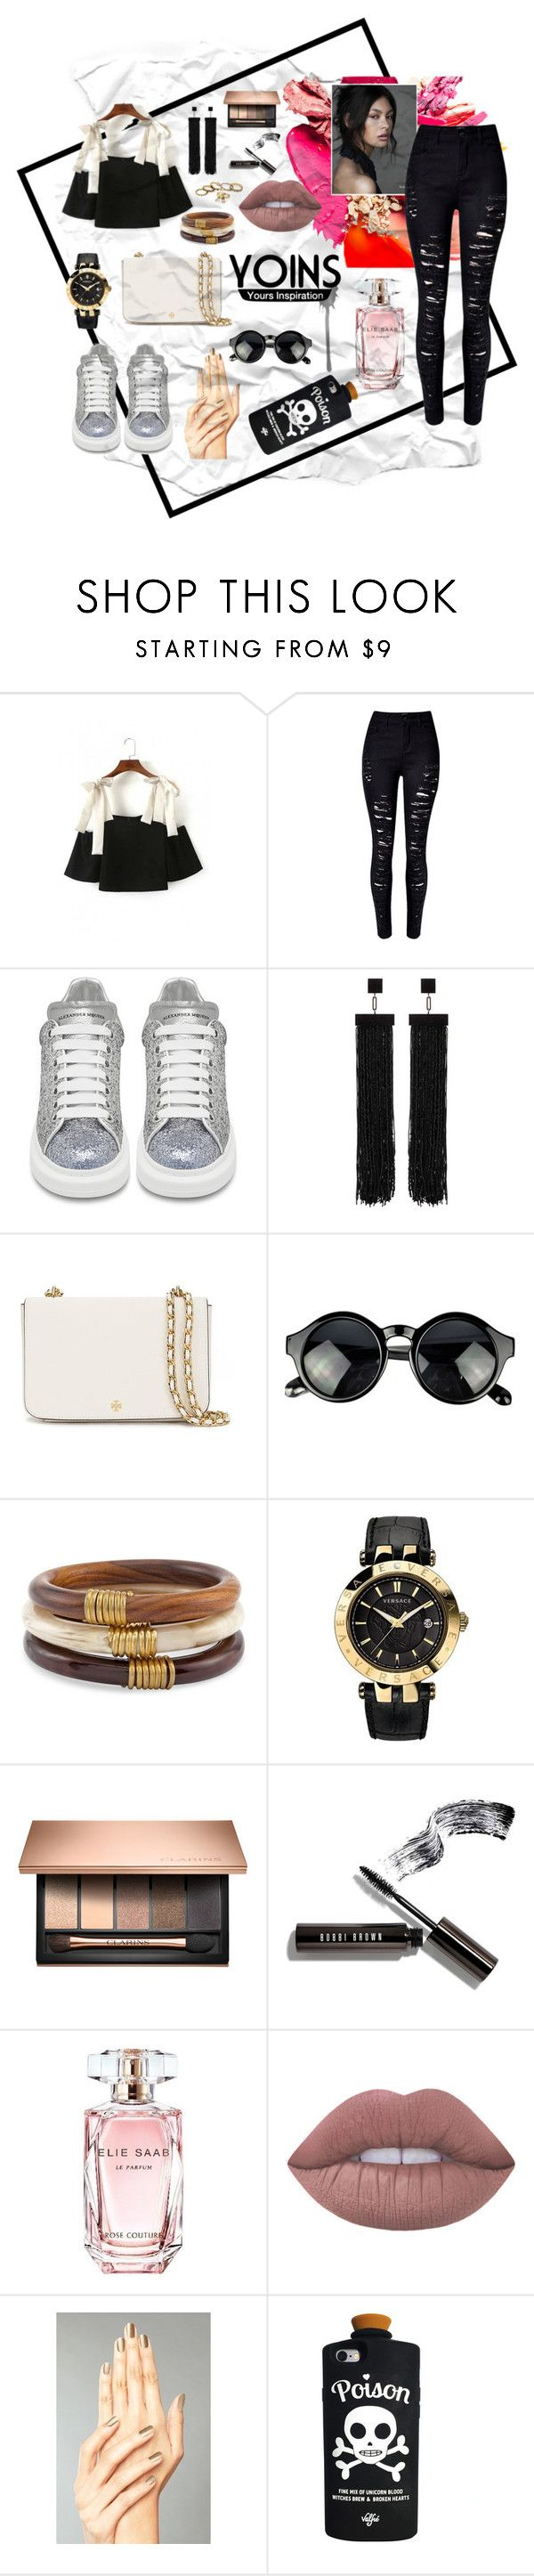 """Cold Shoulder"" by blackheaven on Polyvore featuring WithChic, Alexander McQueen, Tom Ford, Tory Burch, Chico's, Versace, Bobbi Brown Cosmetics, Elie Saab, Lime Crime and Valfré"